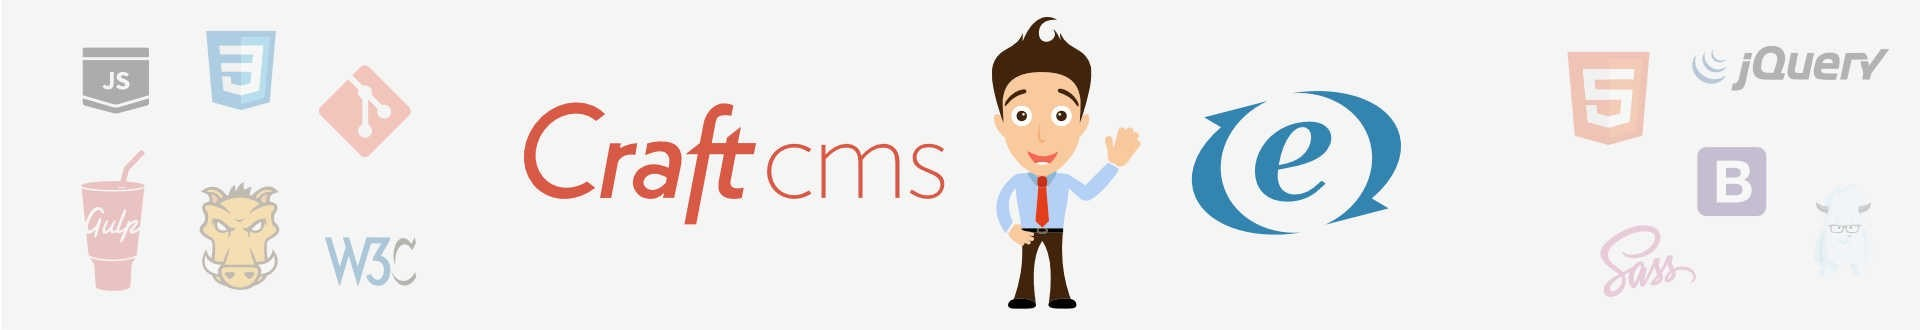 AgencySupport for Craft CMS and ExpressionEngine Development